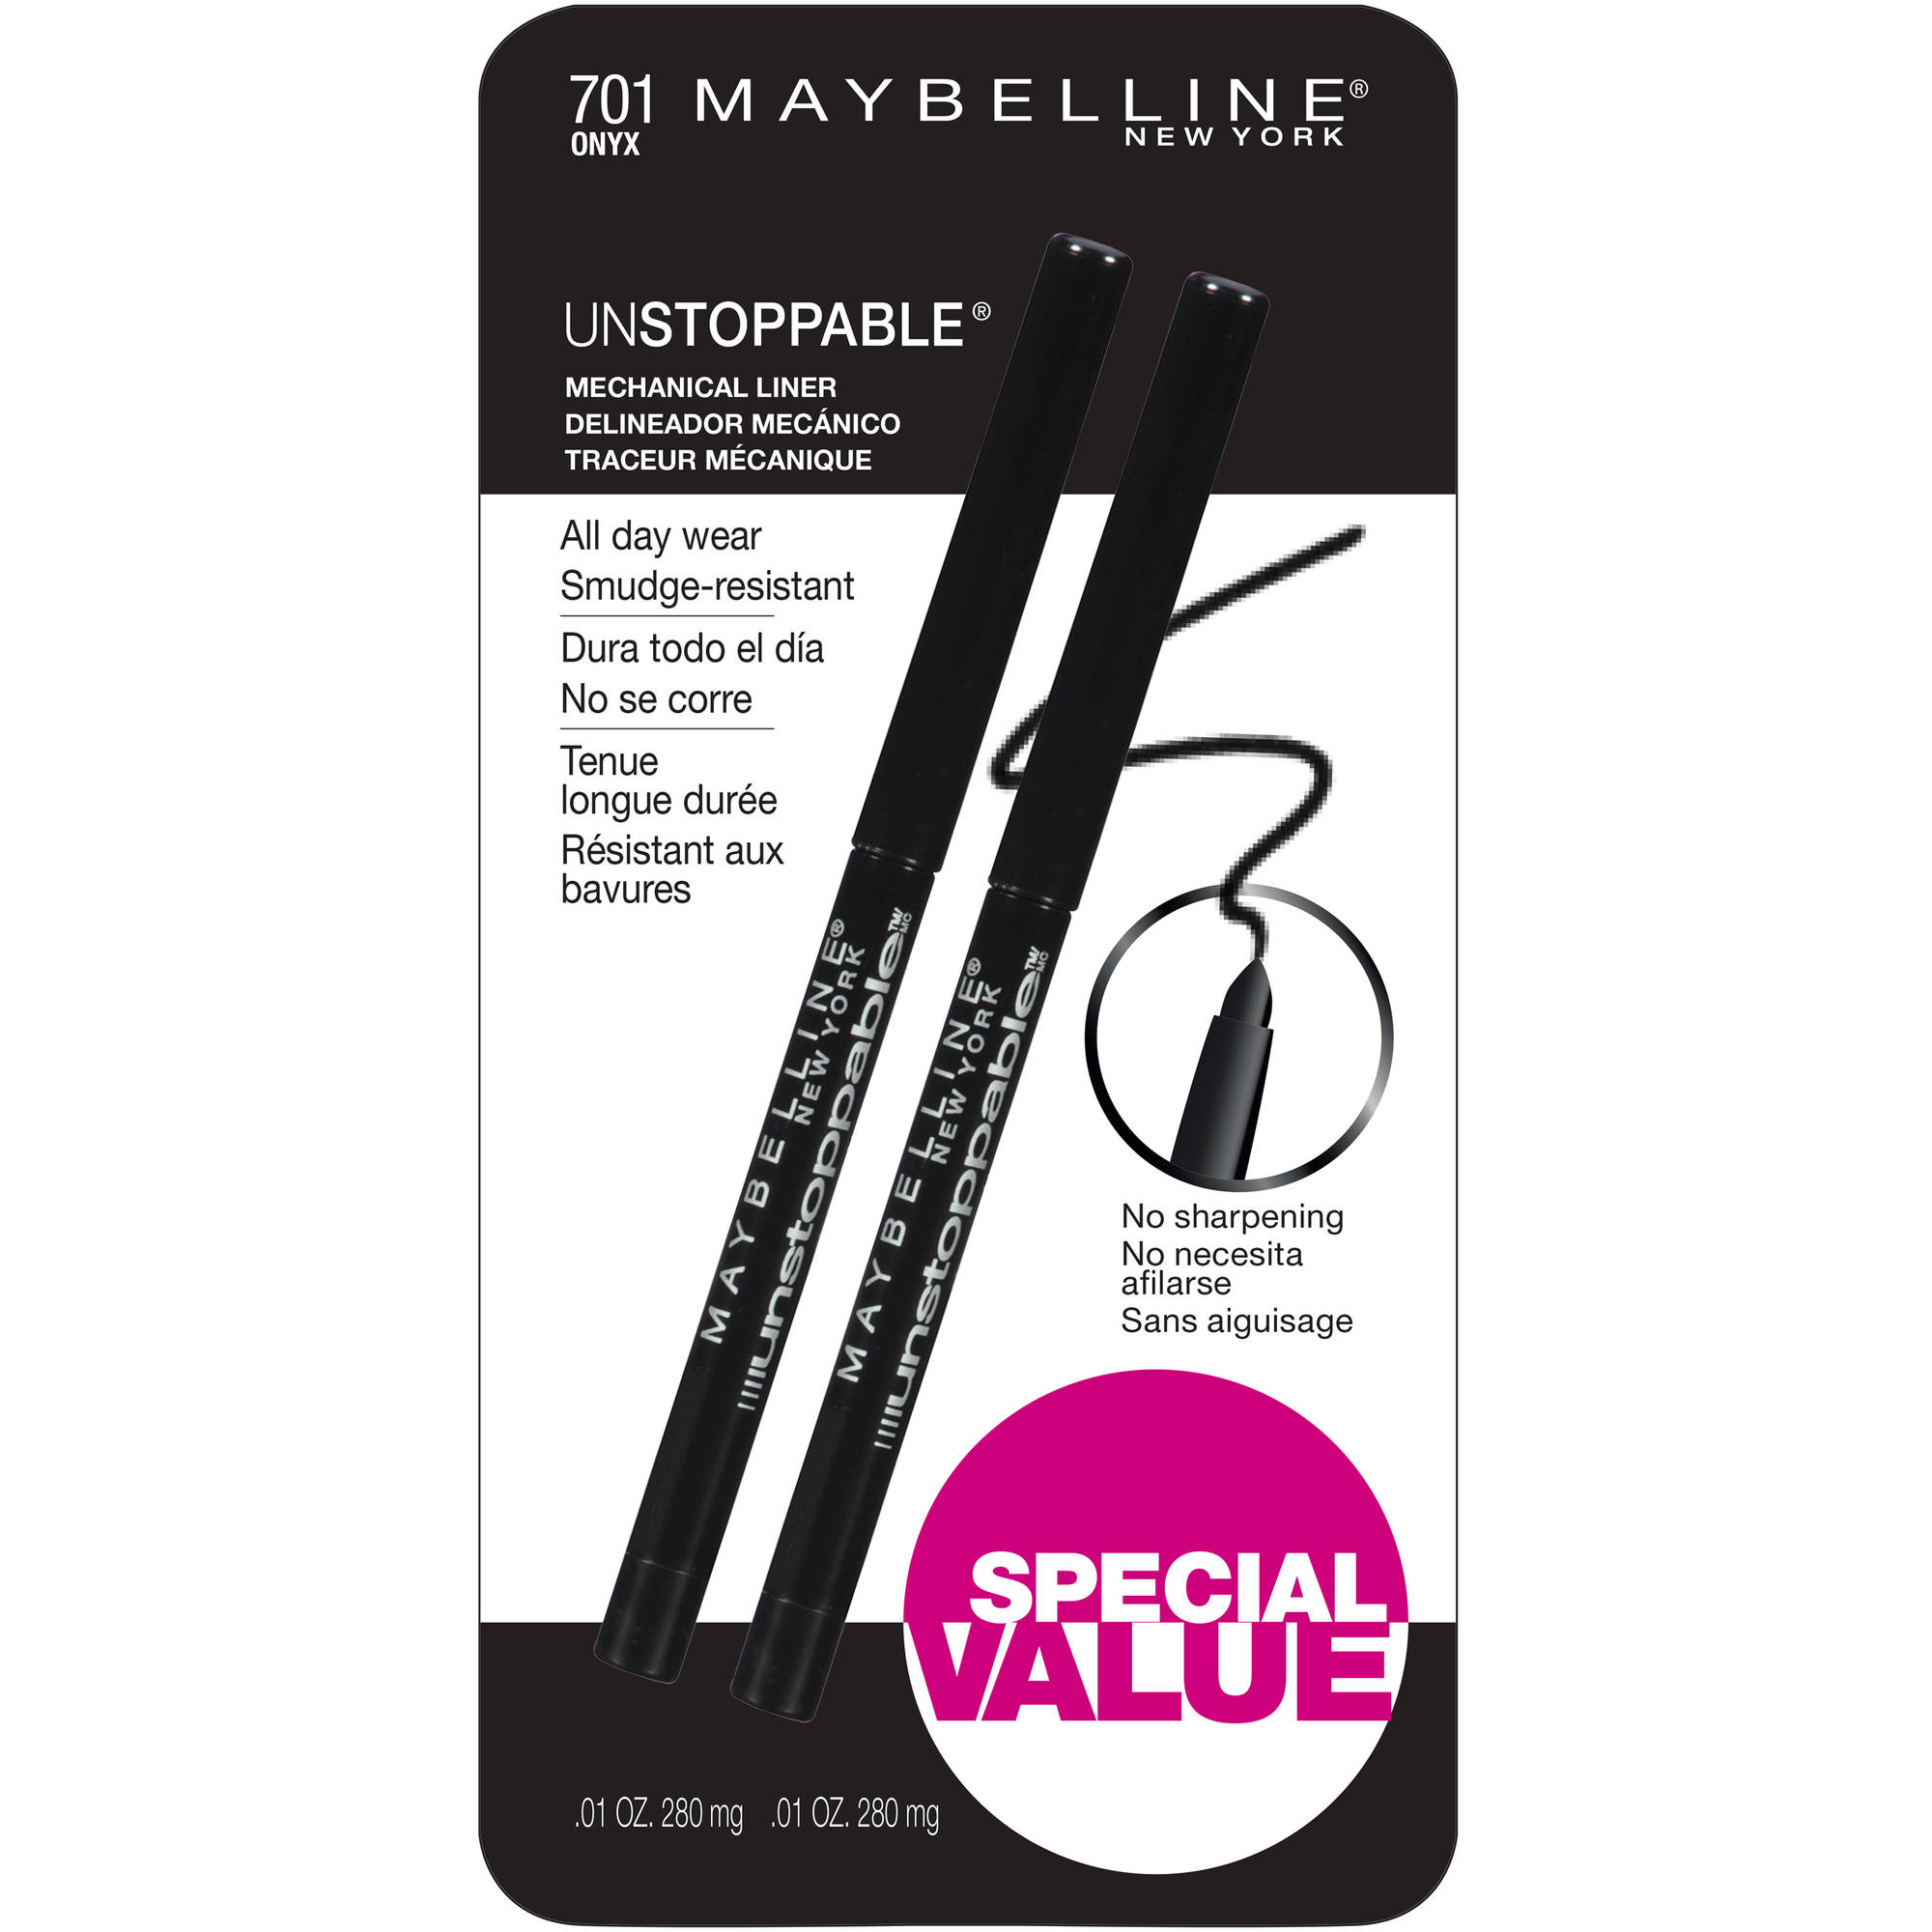 Maybelline New York Unstoppable Mechanical Eyeliner, 701 Onyx, 0.01 oz, 2 count